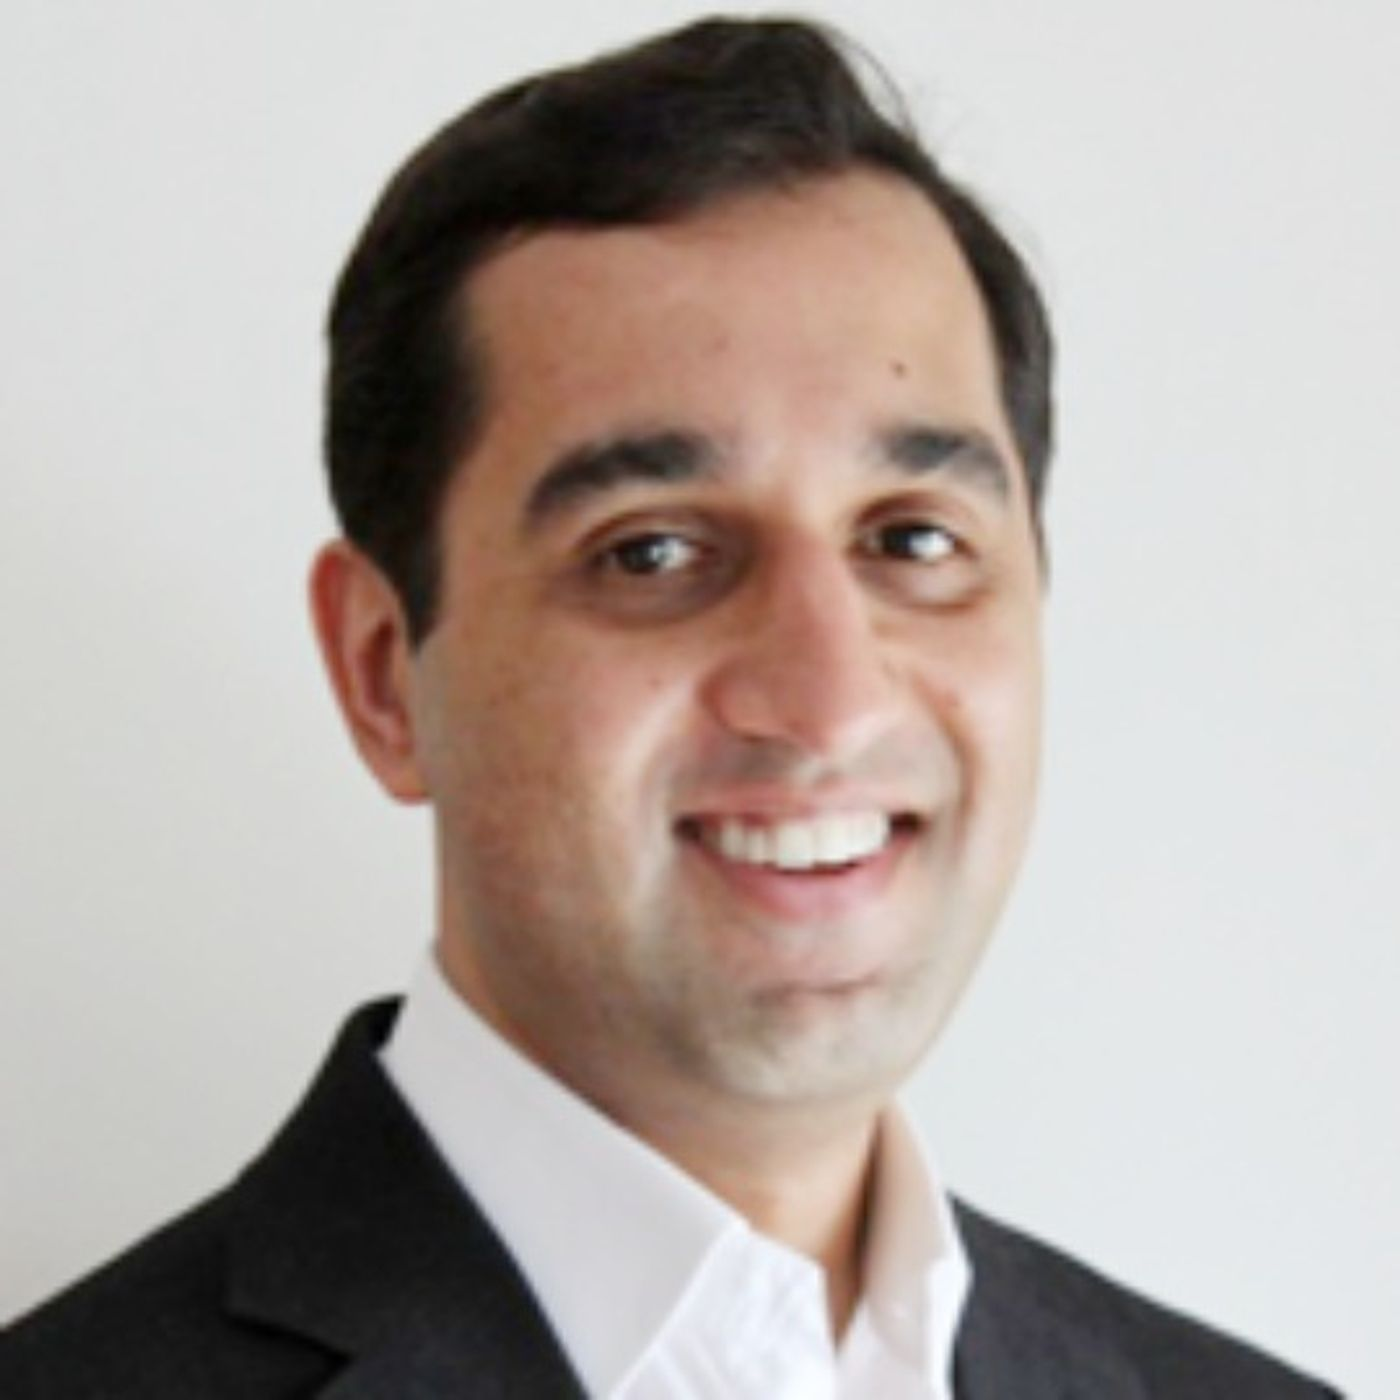 From Bootstrapping to Being Acquired by SoFi and Learning From Constraints, with Mikaal Abdulla, Co-founder and CEO of 8 Securities